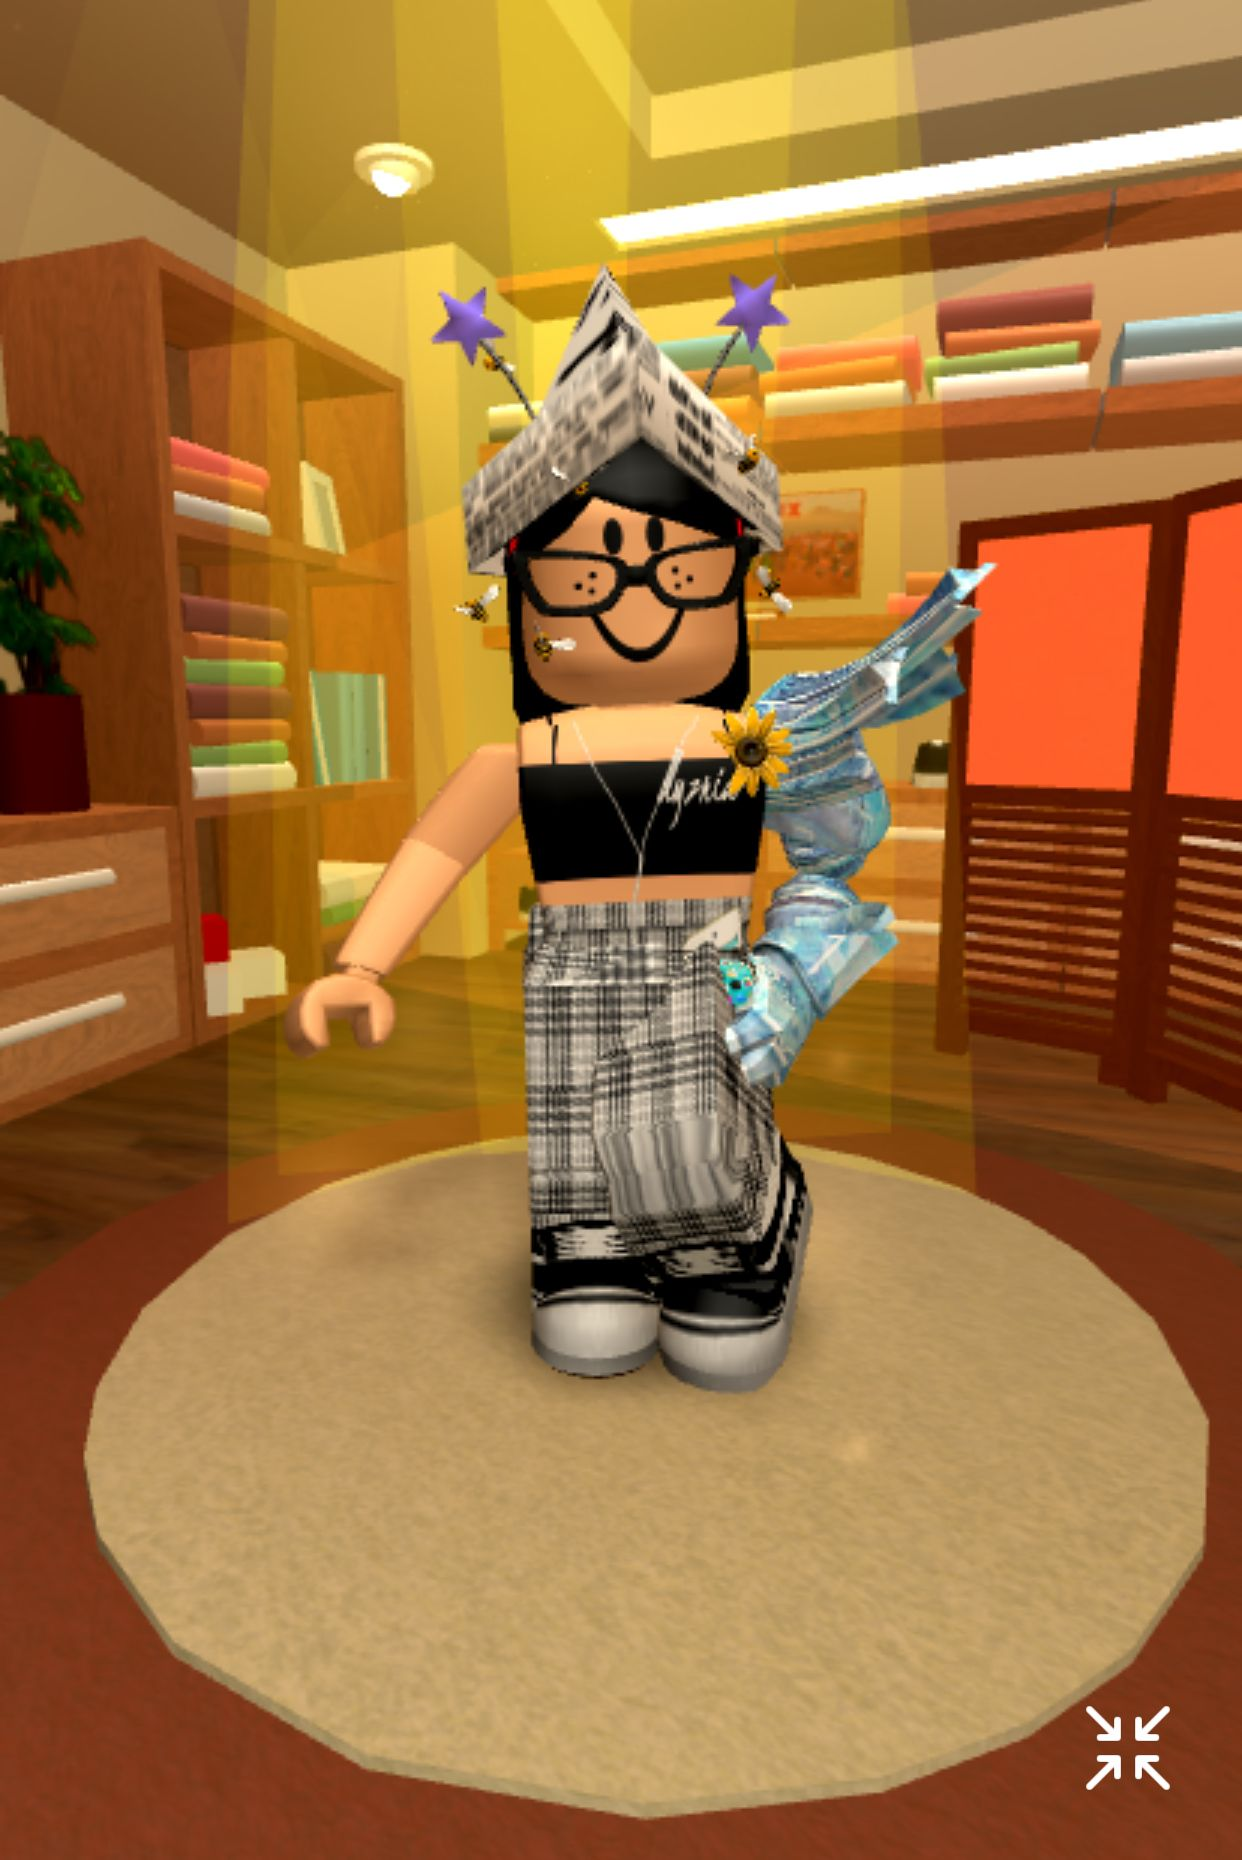 Pin By Hee Hee On Ro Ro Sis Roblox Pictures Roblox Cool Avatars